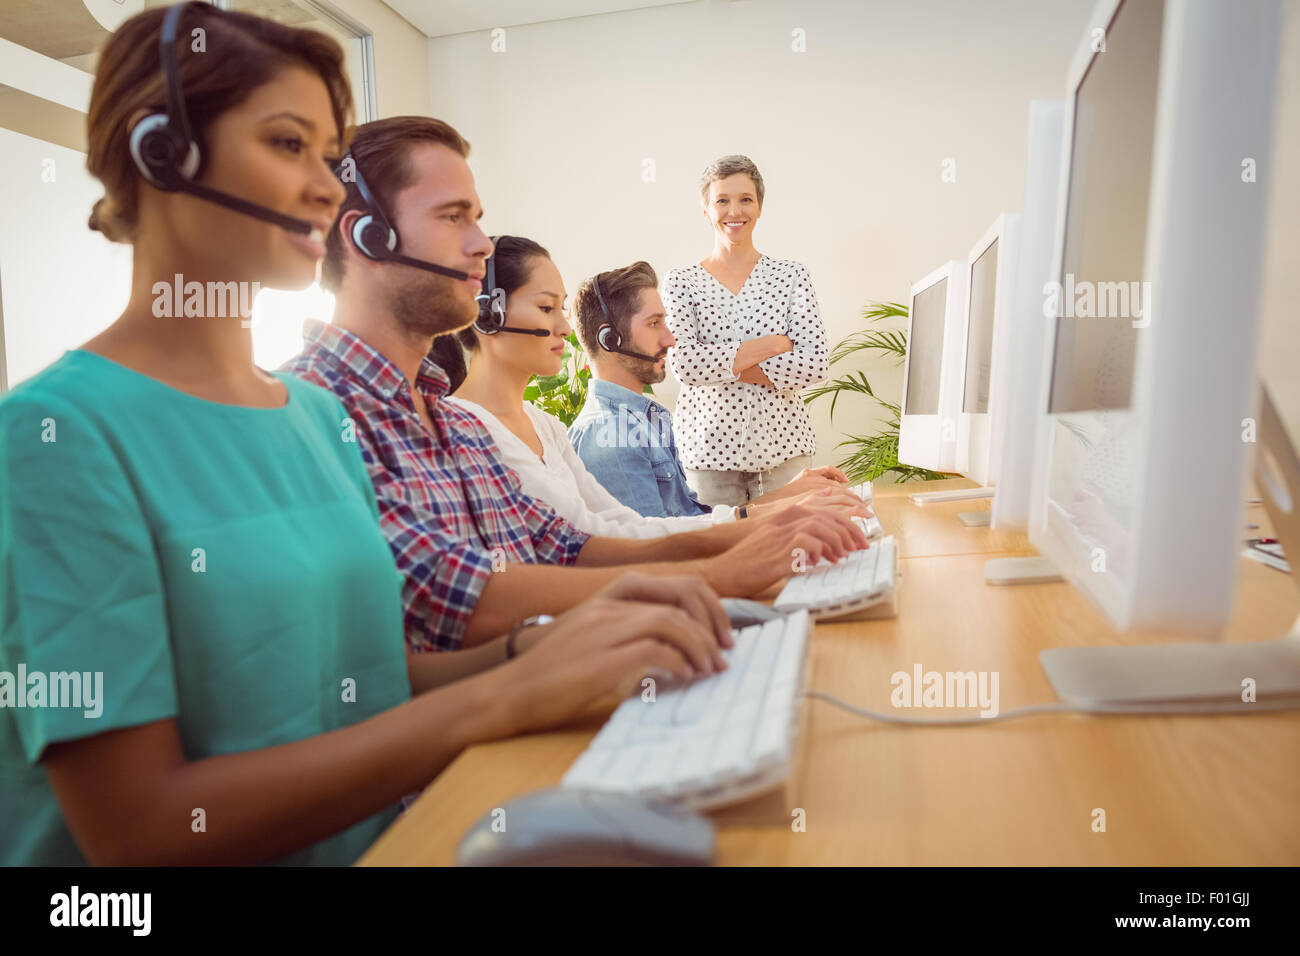 Manager supervising work in call center - Stock Image